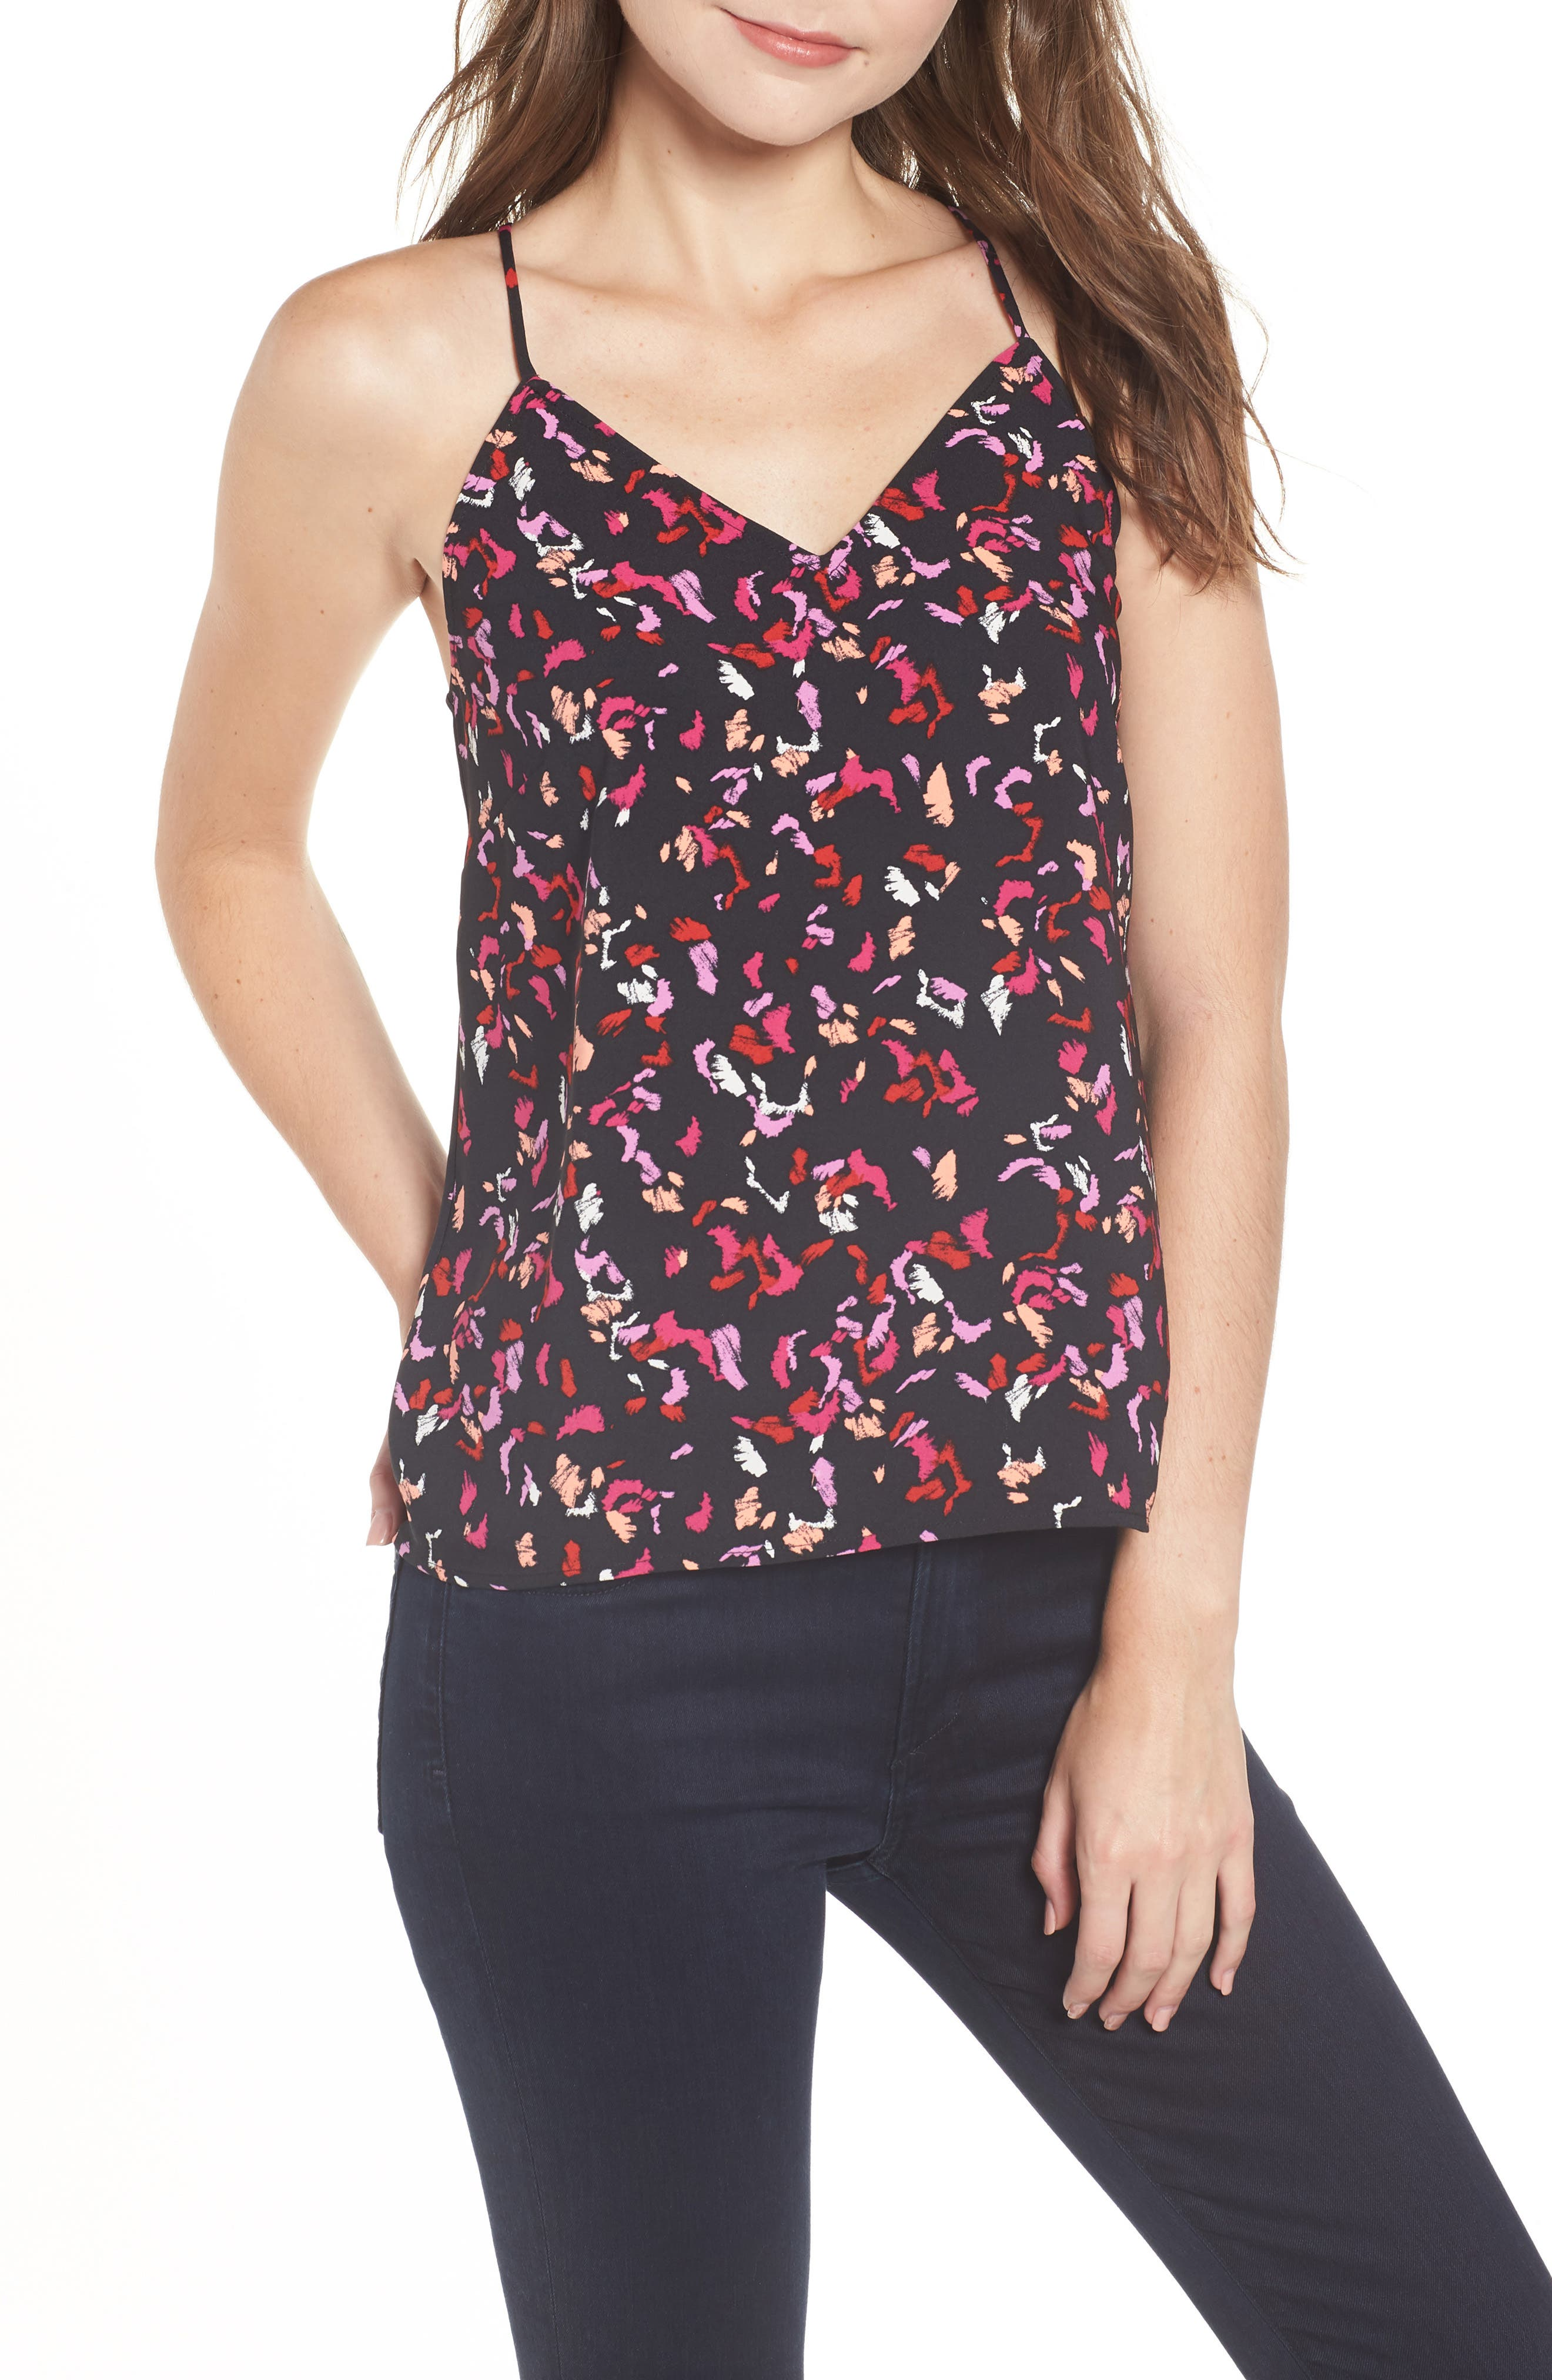 Chelsea28 Strappy Camisole